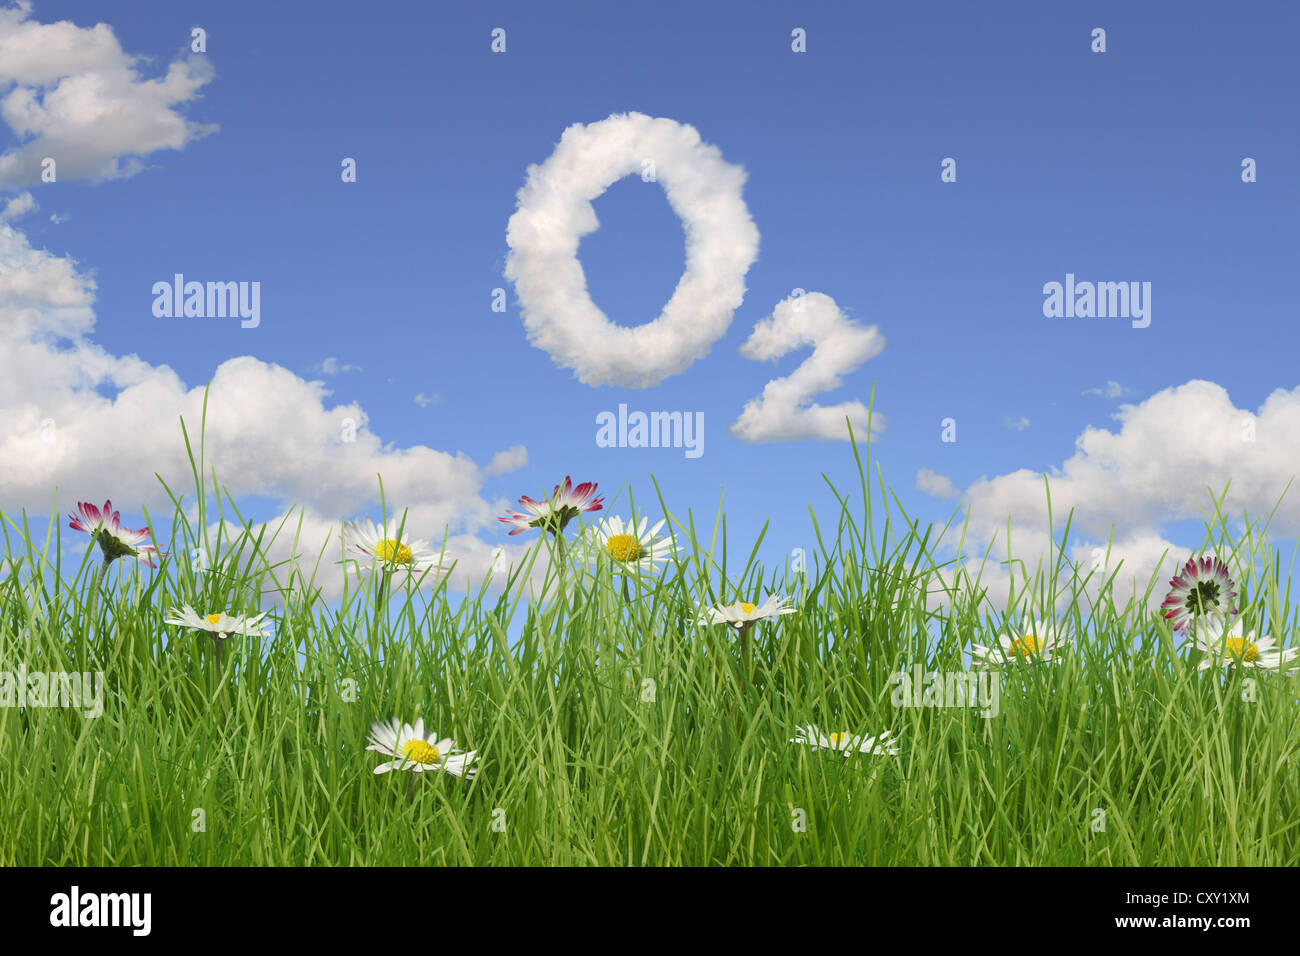 Field of flowers, clouds forming the letters 'O2', illustration - Stock Image